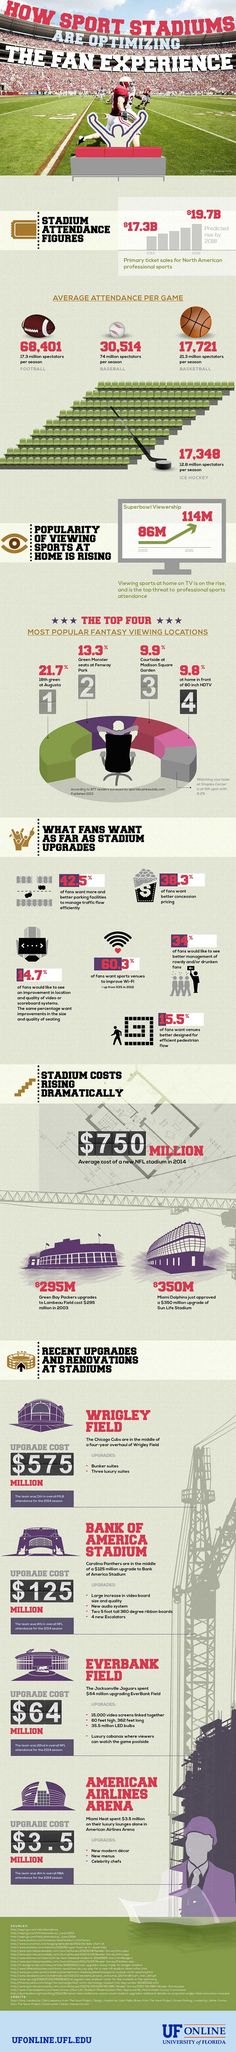 UF Online Infographic: How Sport Stadiums are Optimizing the Fan Experience Sports Stadium, Sports Teams, Sports Fanatics, University Of Florida, Coaches, Ticket, Infographic, Events, Athletic